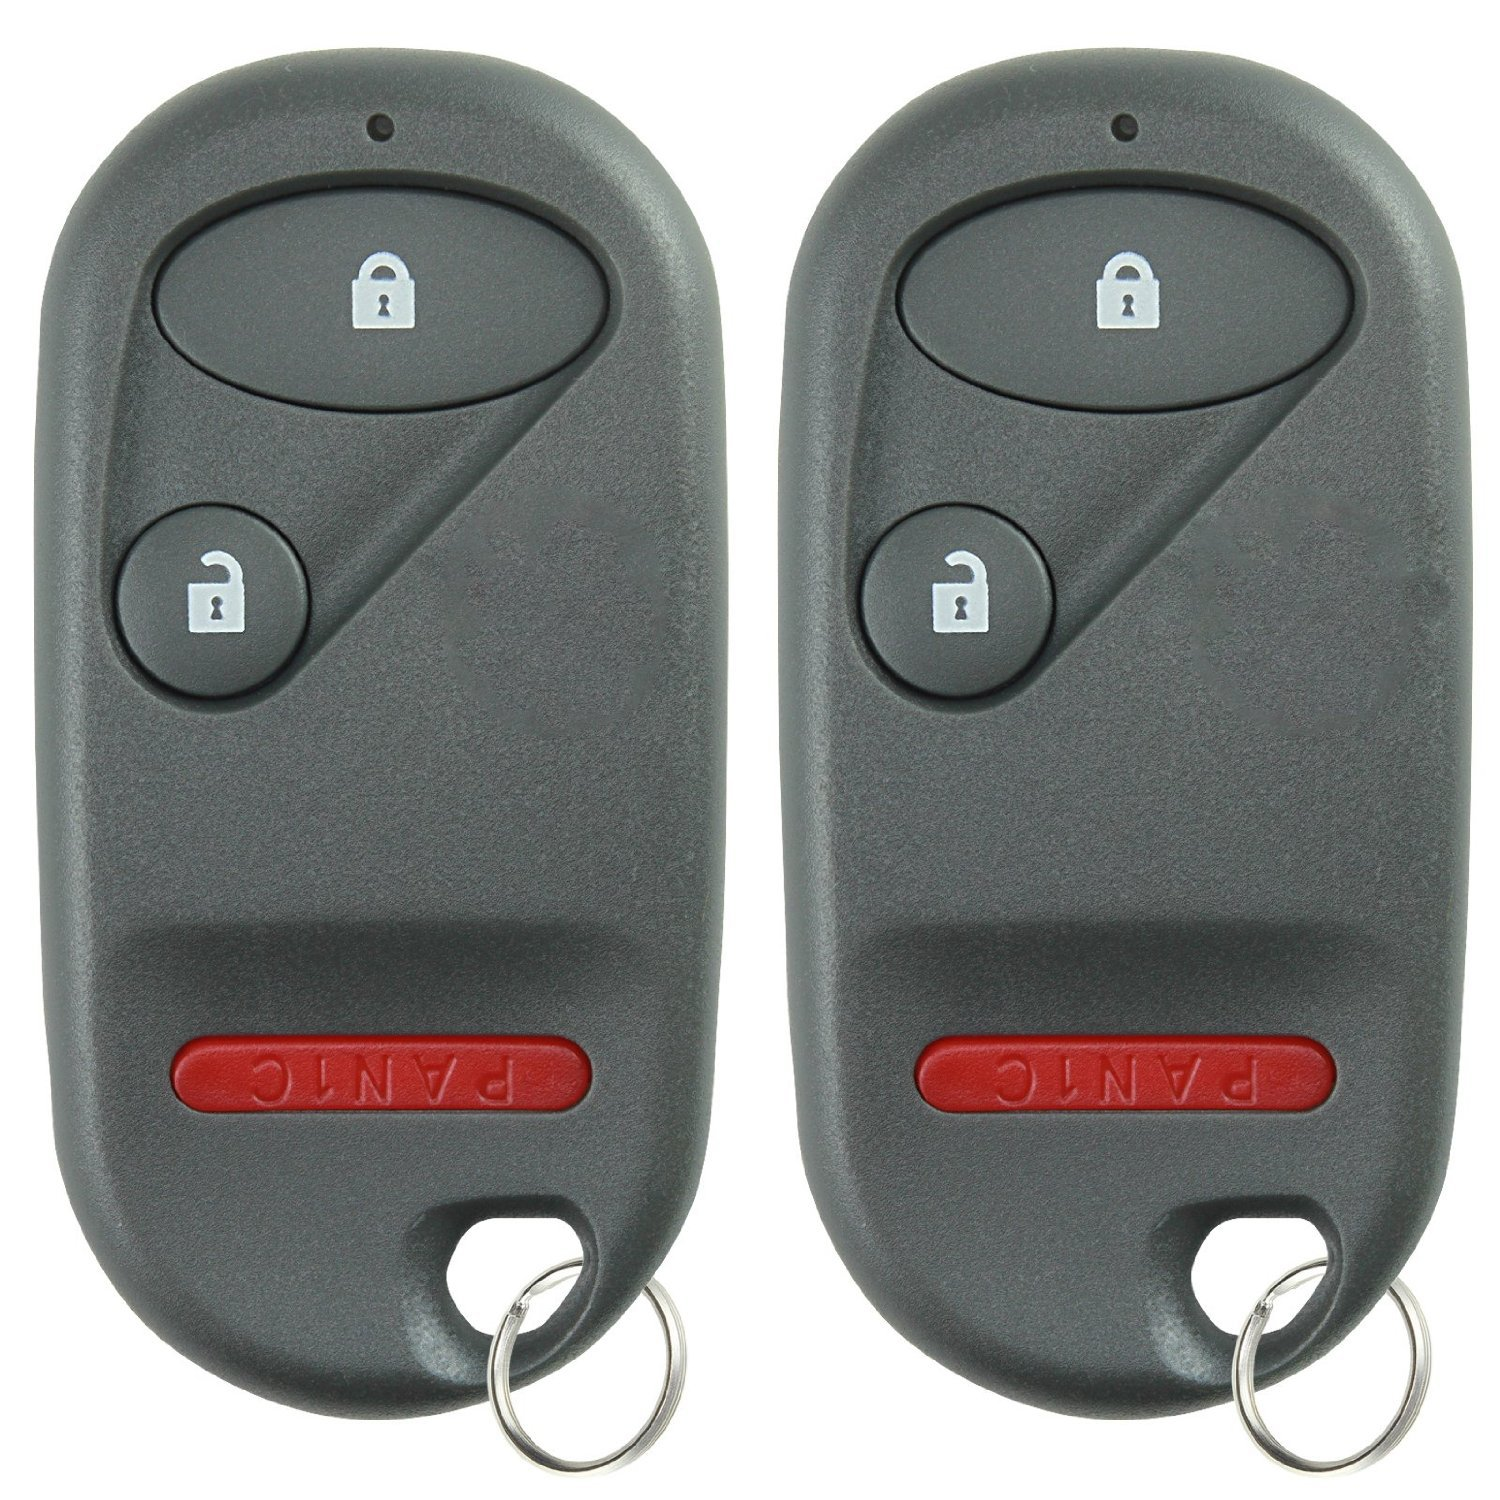 KeylessOption Keyless Entry Remote Control Car Key Fob Clicker Replacement for OUCG8D-344H-A Pack of 2